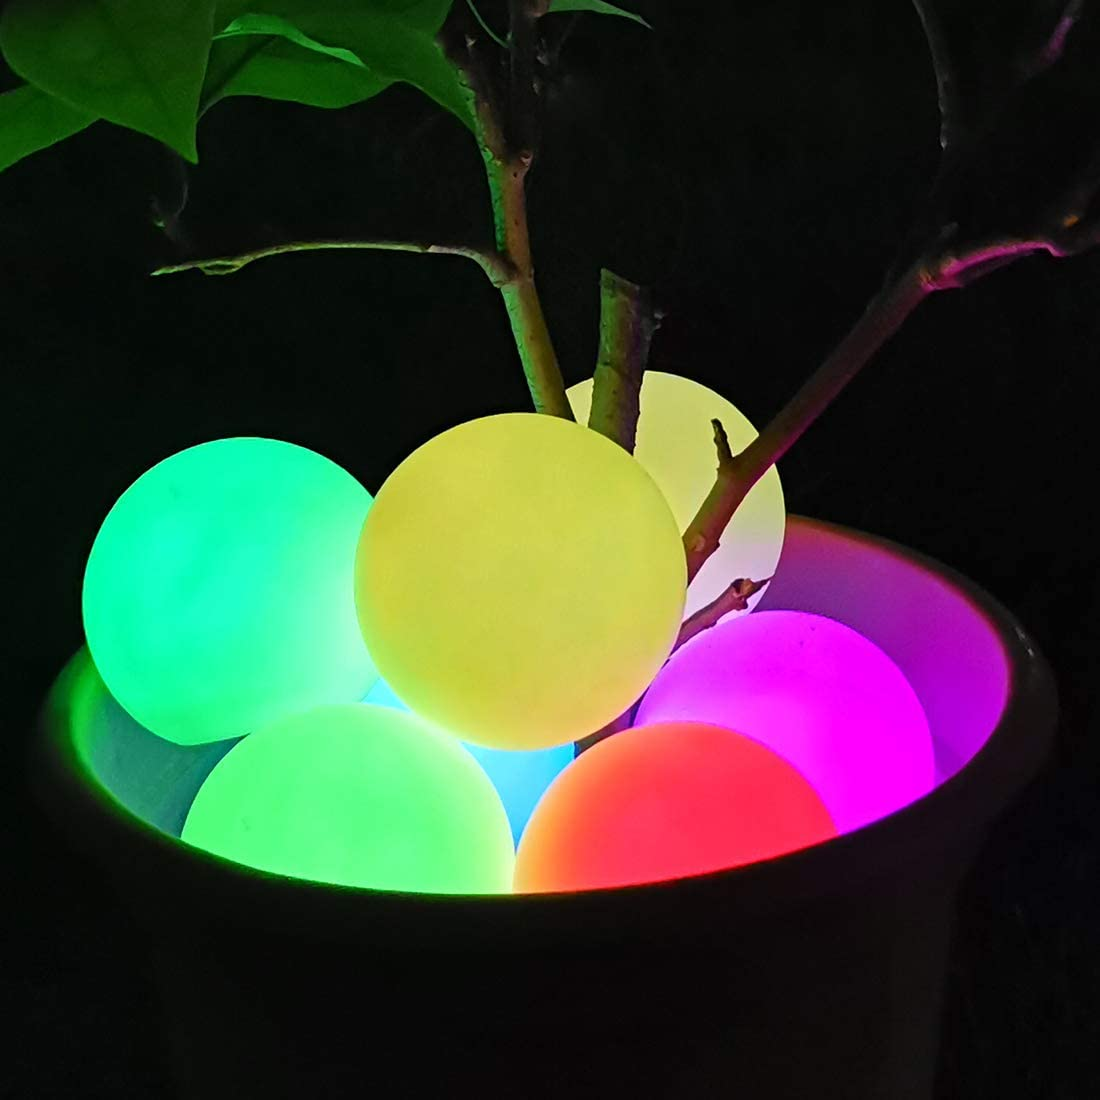 Floating Pool Light Ball, RGB Color Changing LED Bathtub Night Light IP68 Waterproof, Orb Light up Ball for Kids Gift, Wedding, Party, Hot Tub, Festival,Pond, Garden, Pool Decor Outdoor Indoor(2PCS)